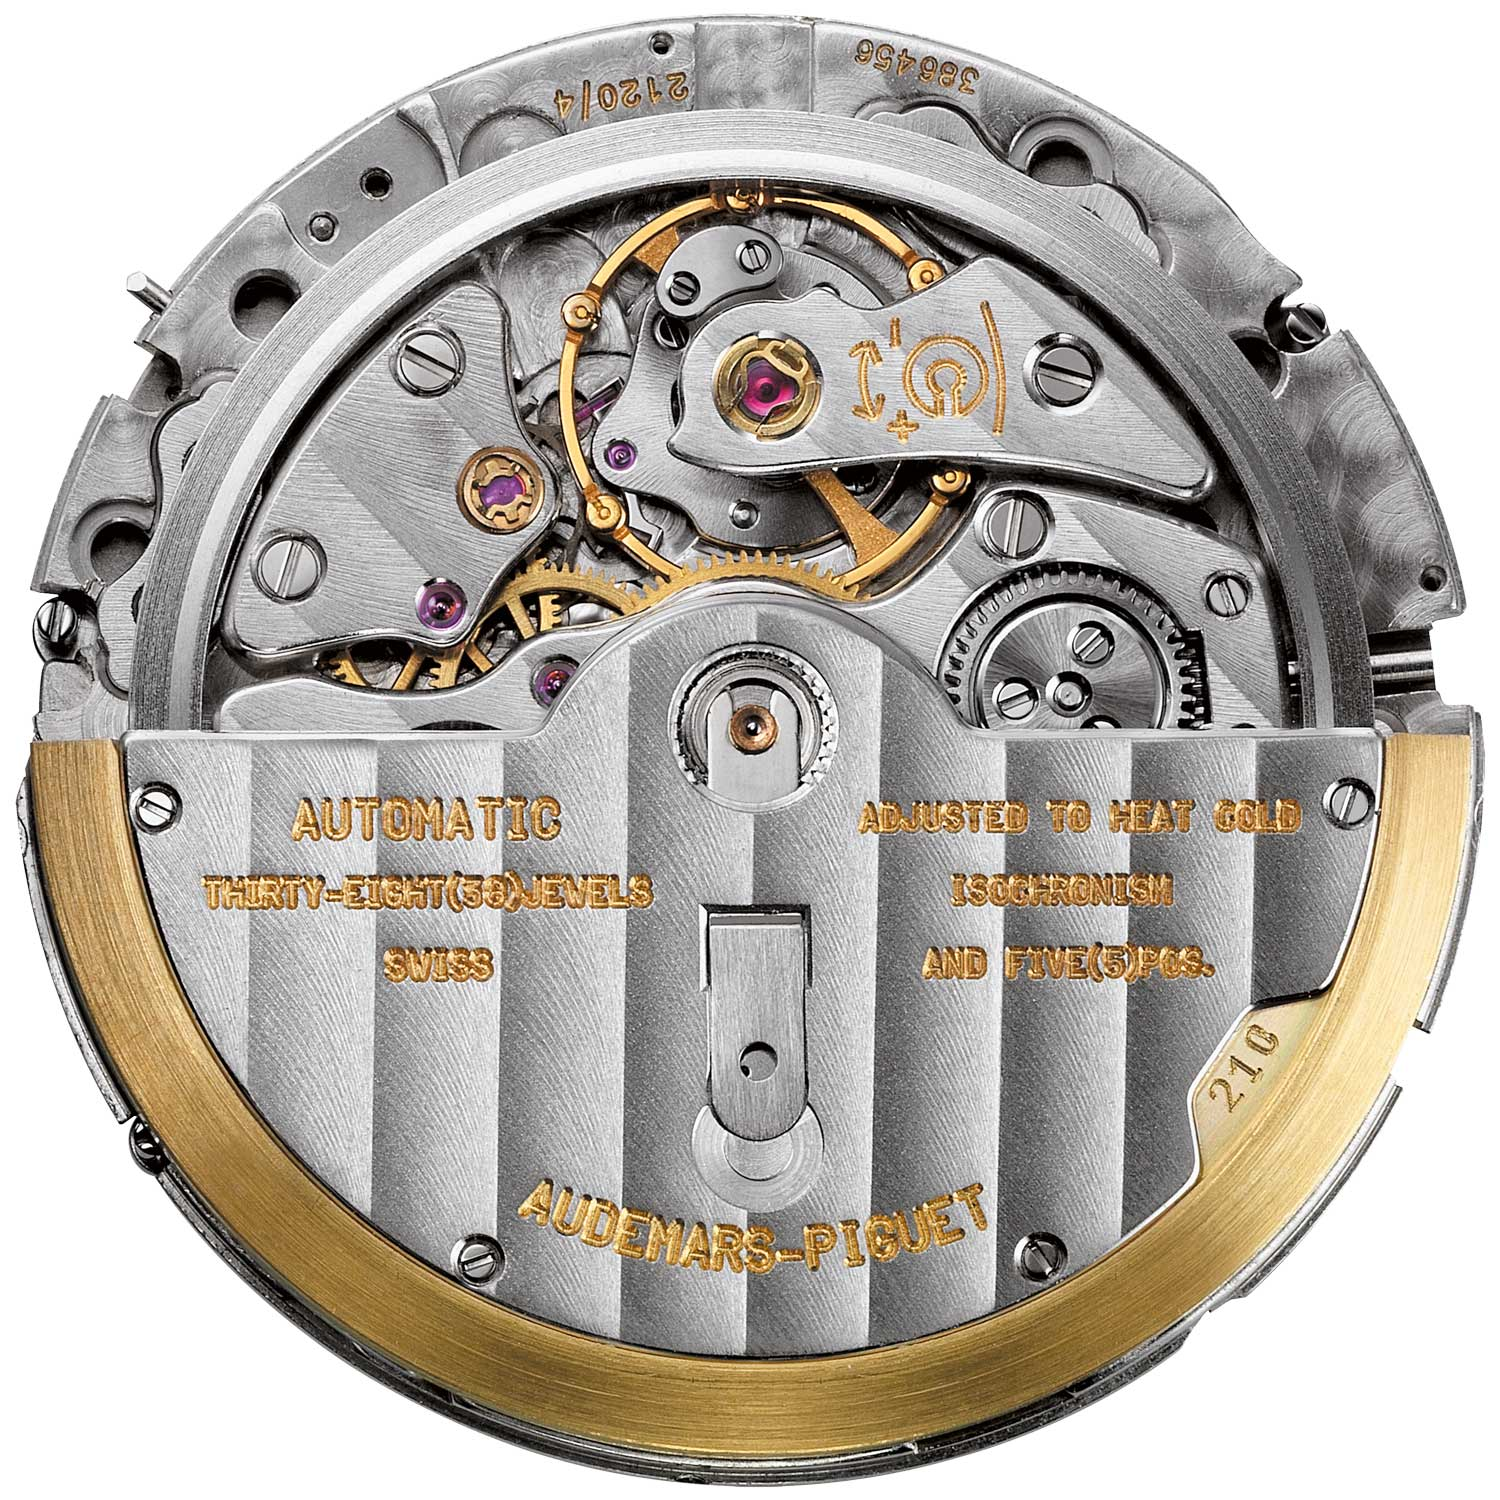 ...and the 2121/2800 perpetual calendar movement